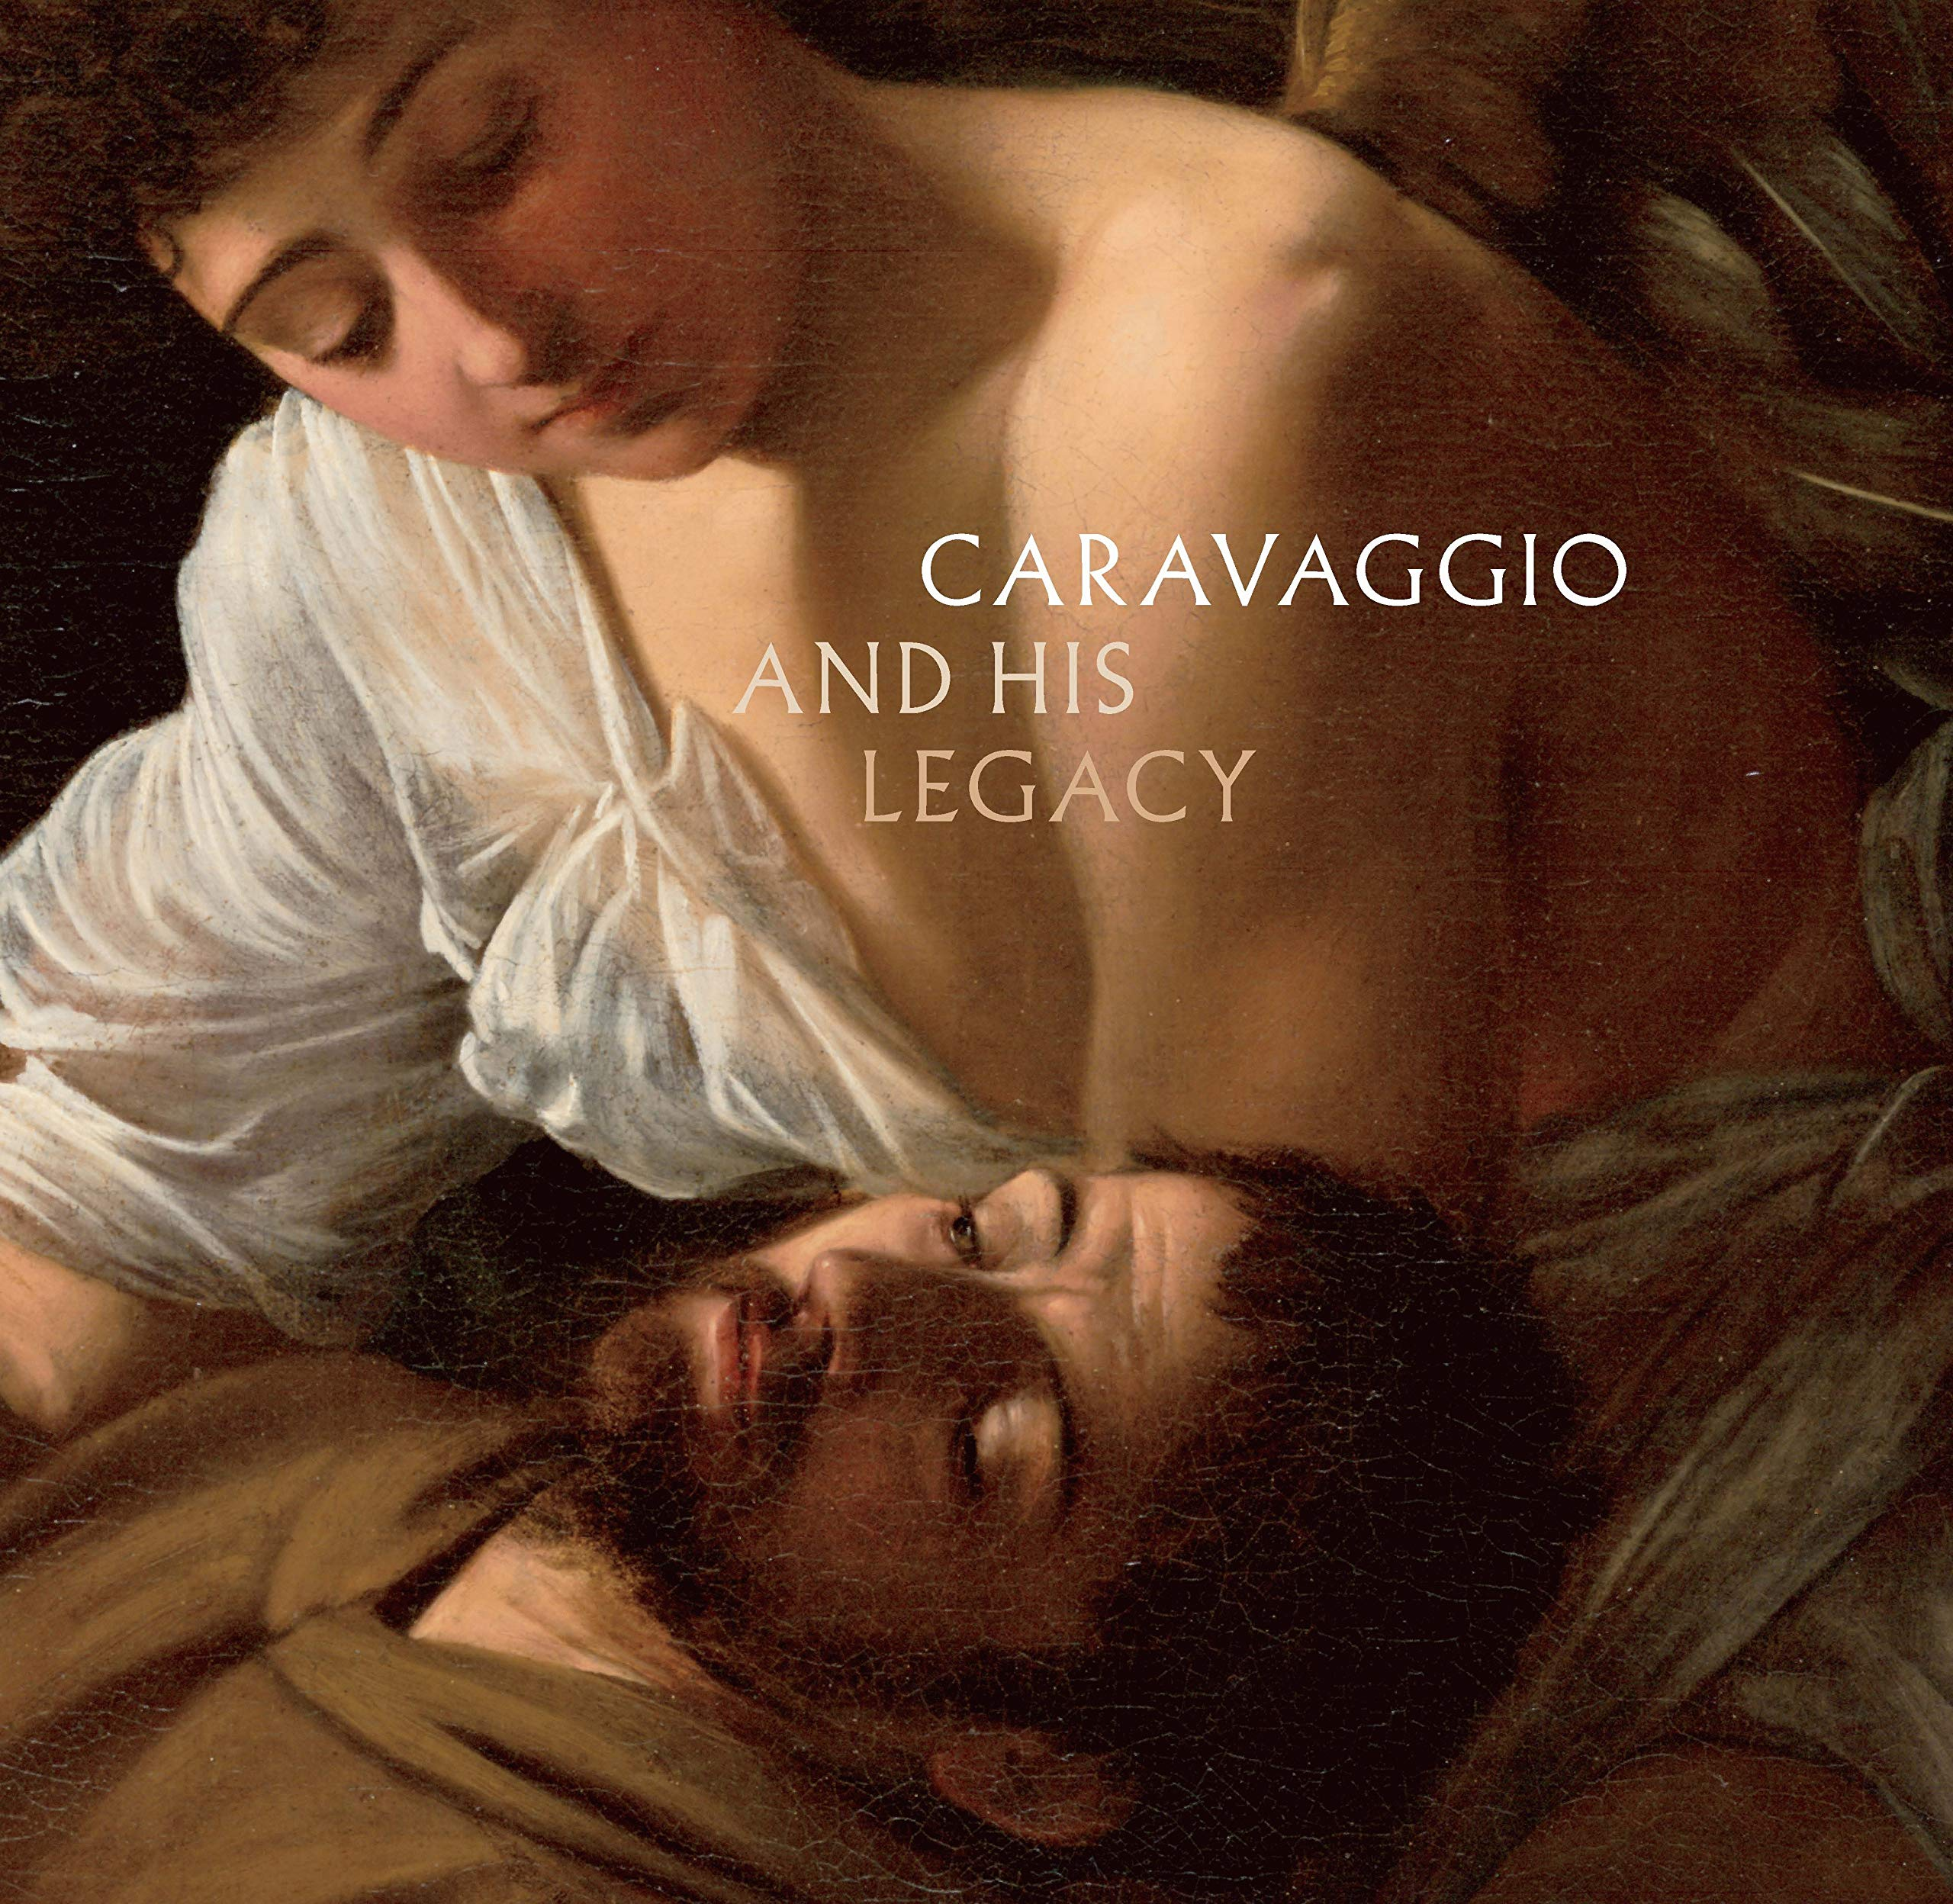 Caravaggio And His Legacy